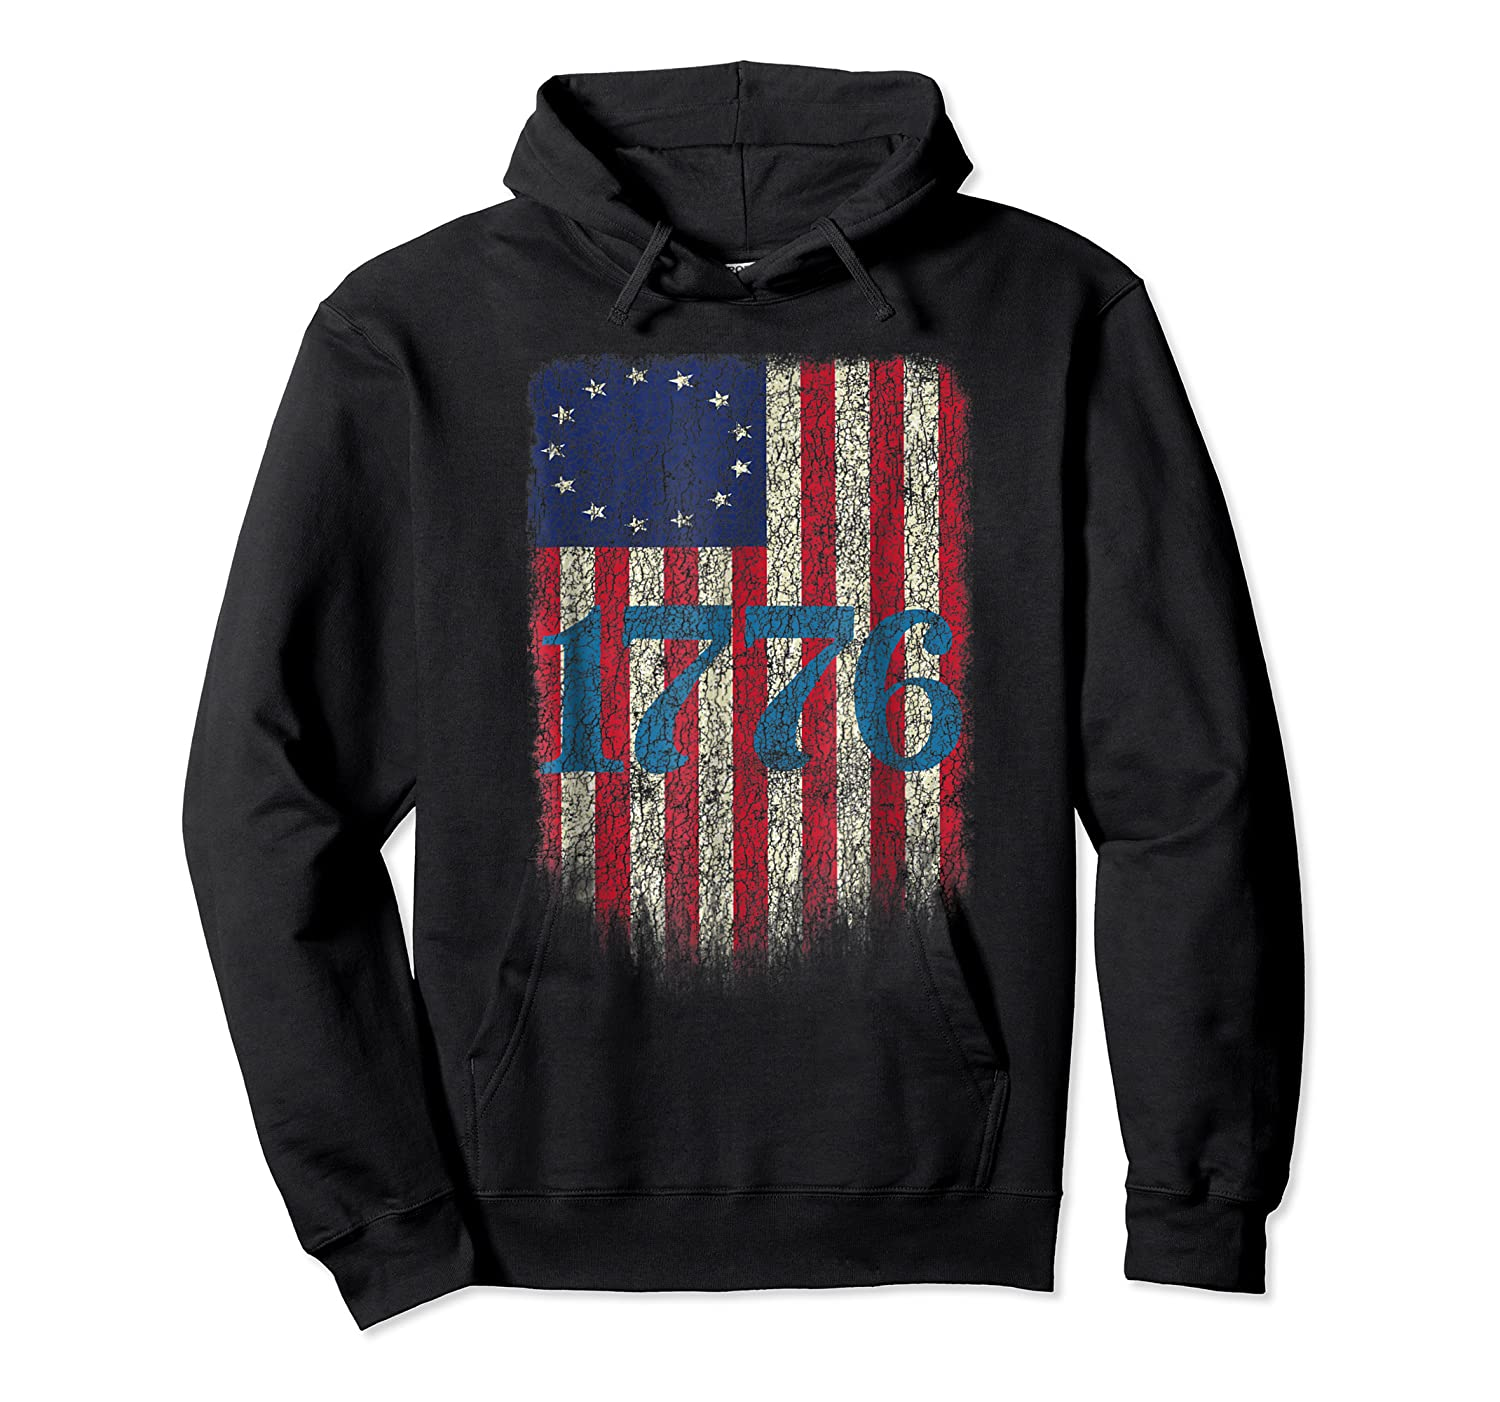 Betsy Ross Shirt 4th Of July American Flag Tshirt 1776 Unisex Pullover Hoodie